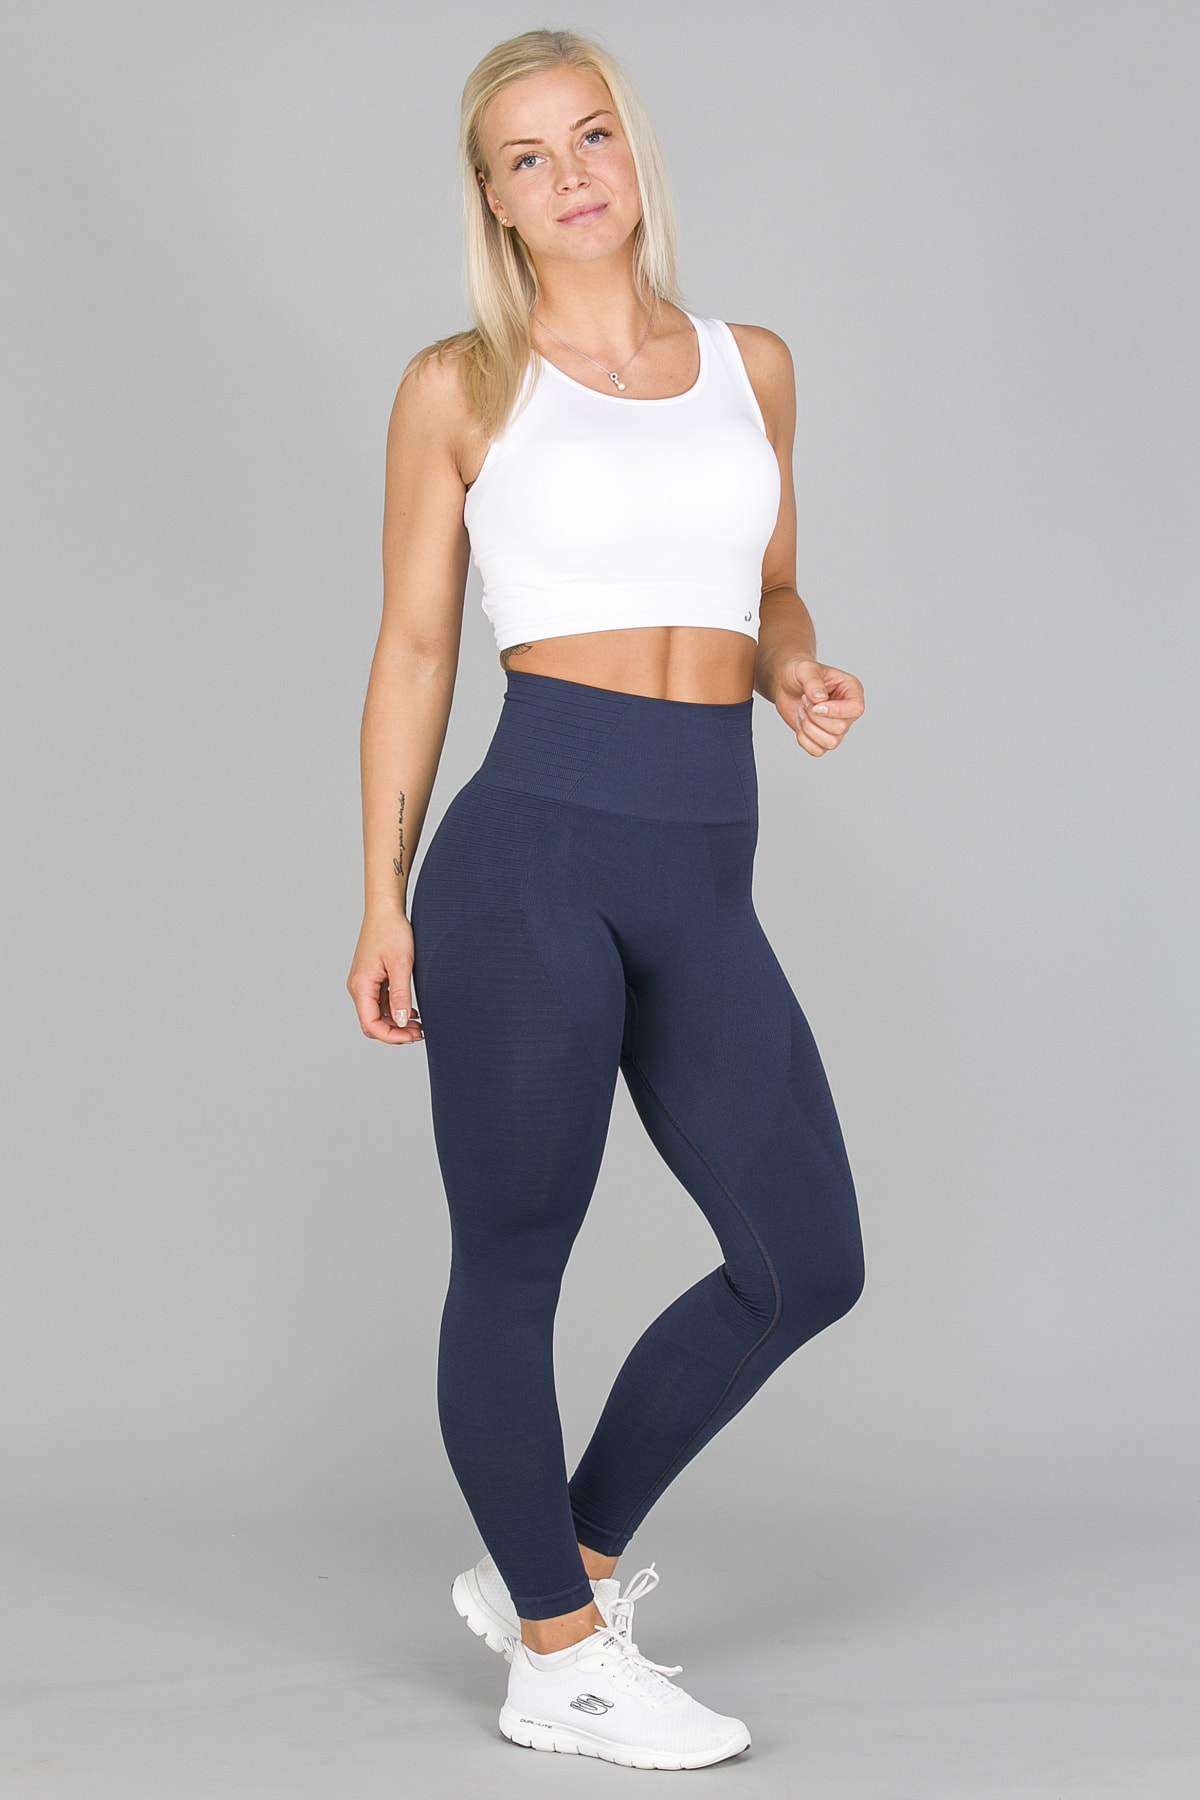 Jerf Gela 2.0 tights Navy Blue19